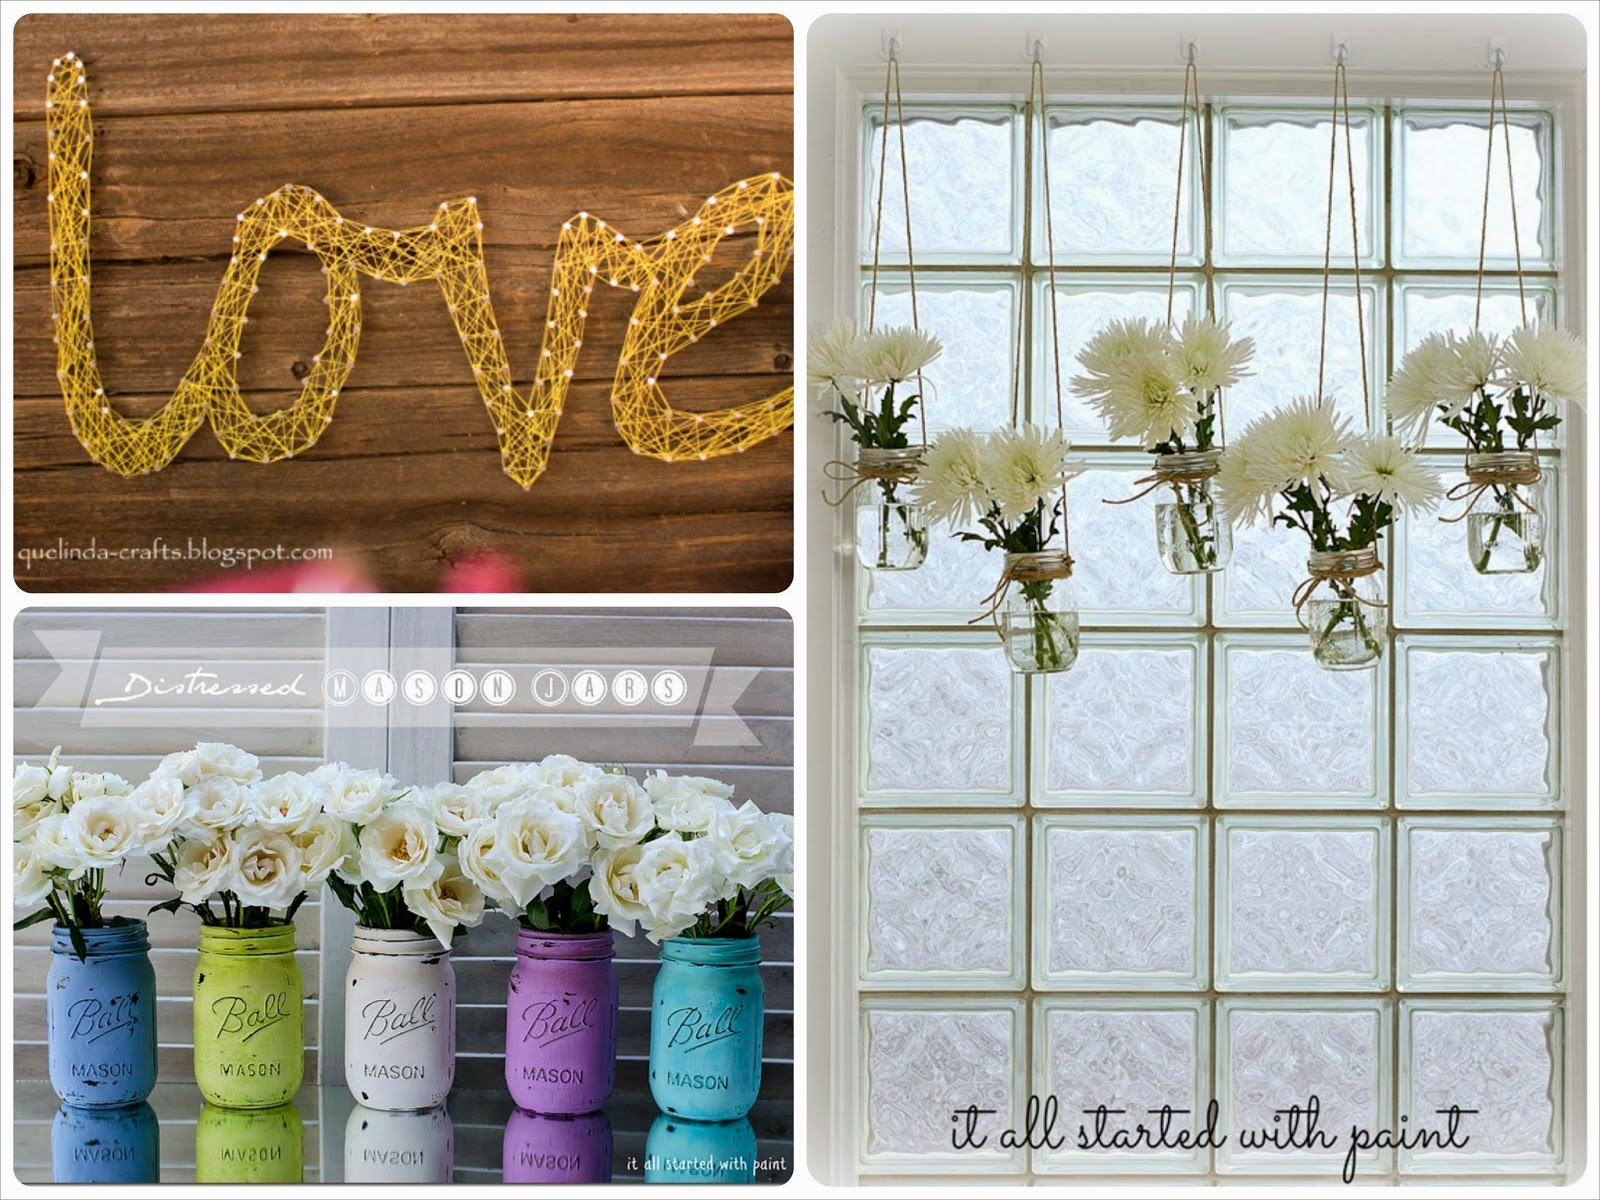 Tutoriales de decoración DIY para adornar en casa, fiestas o celebraciones. DIY home decor